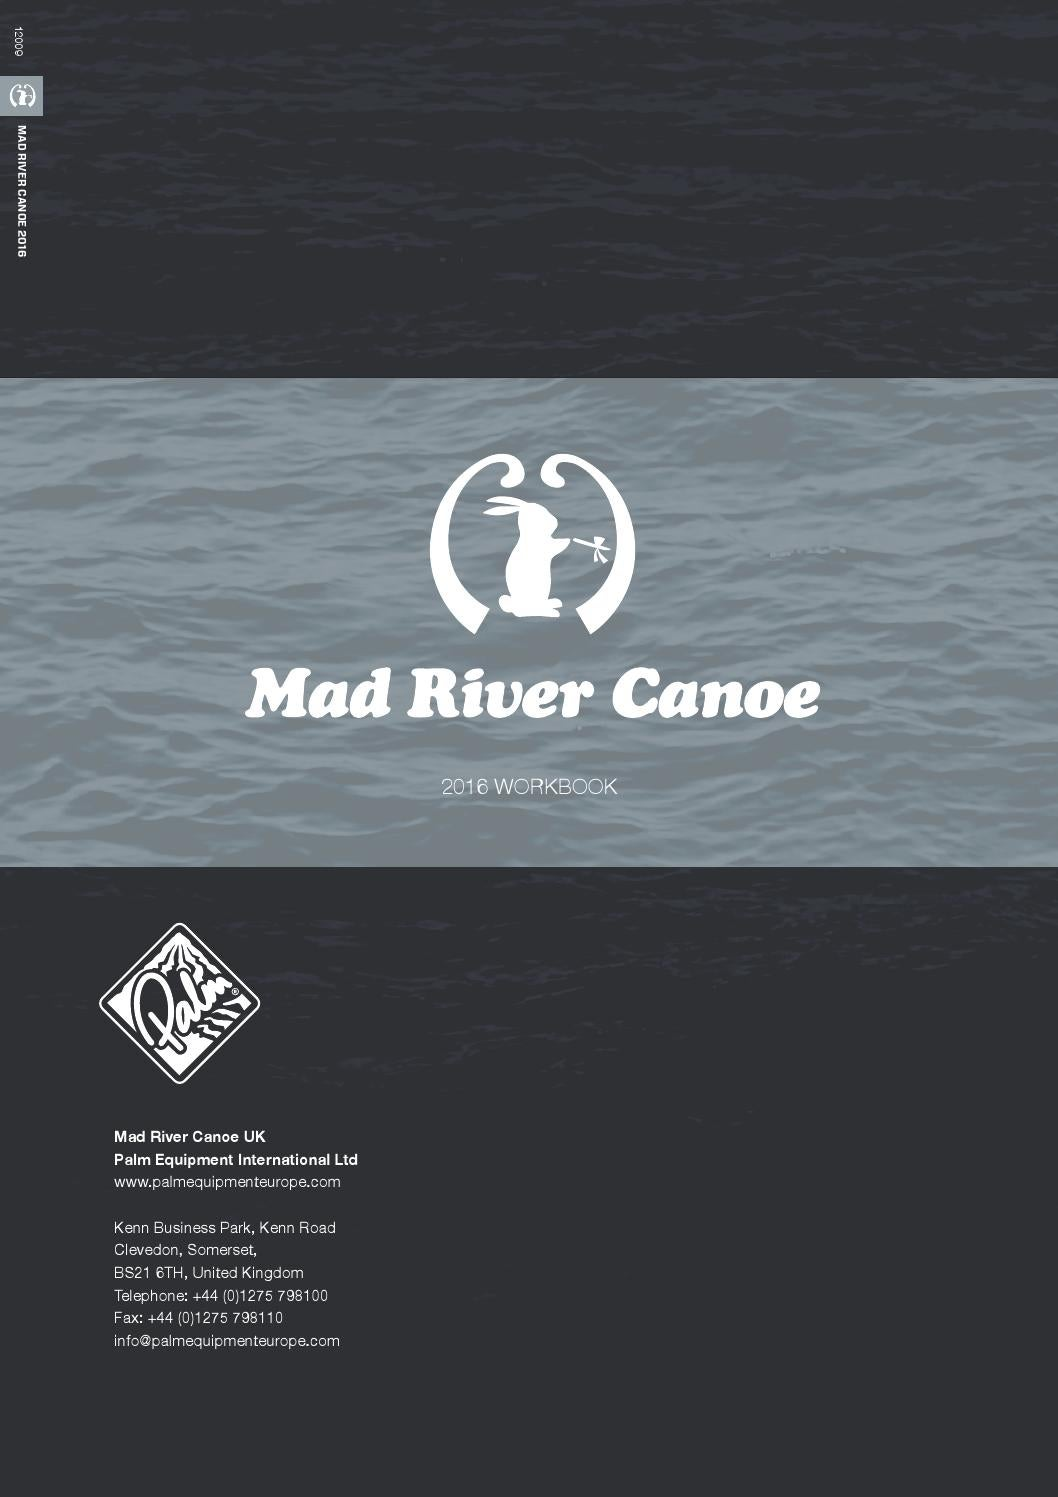 Mad River Canoe 2016 Workbook supplement by Palm Equipment